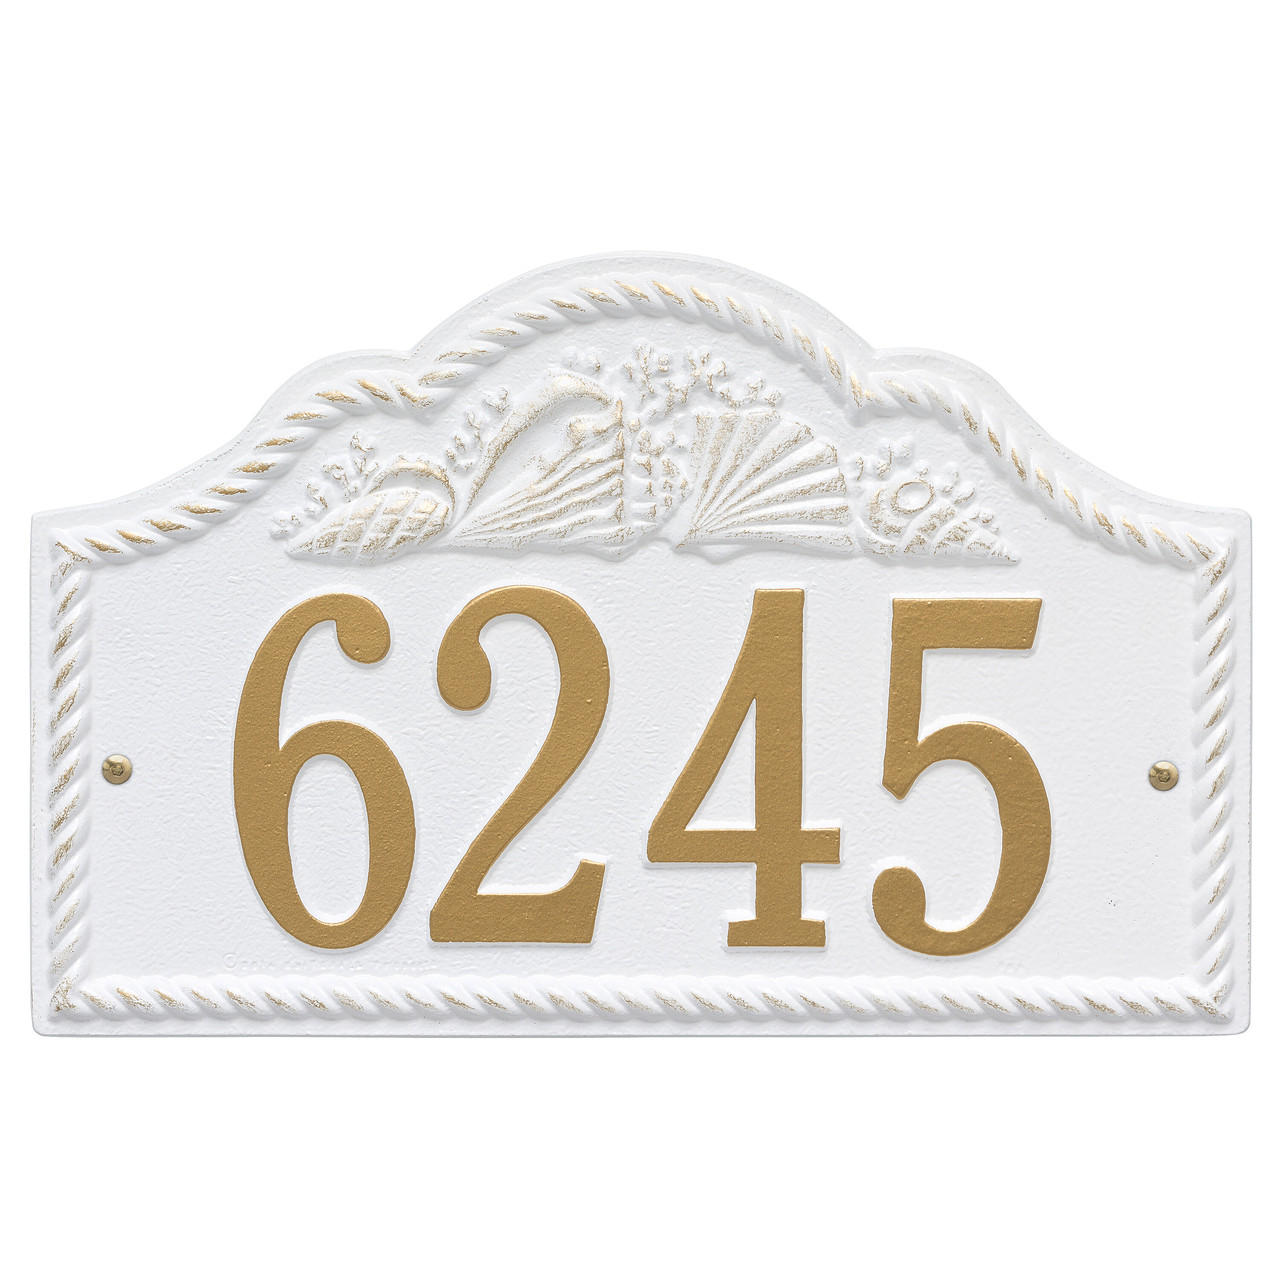 Personalized Rope Shell Arched Nautical Wall Address Plaque - One Line